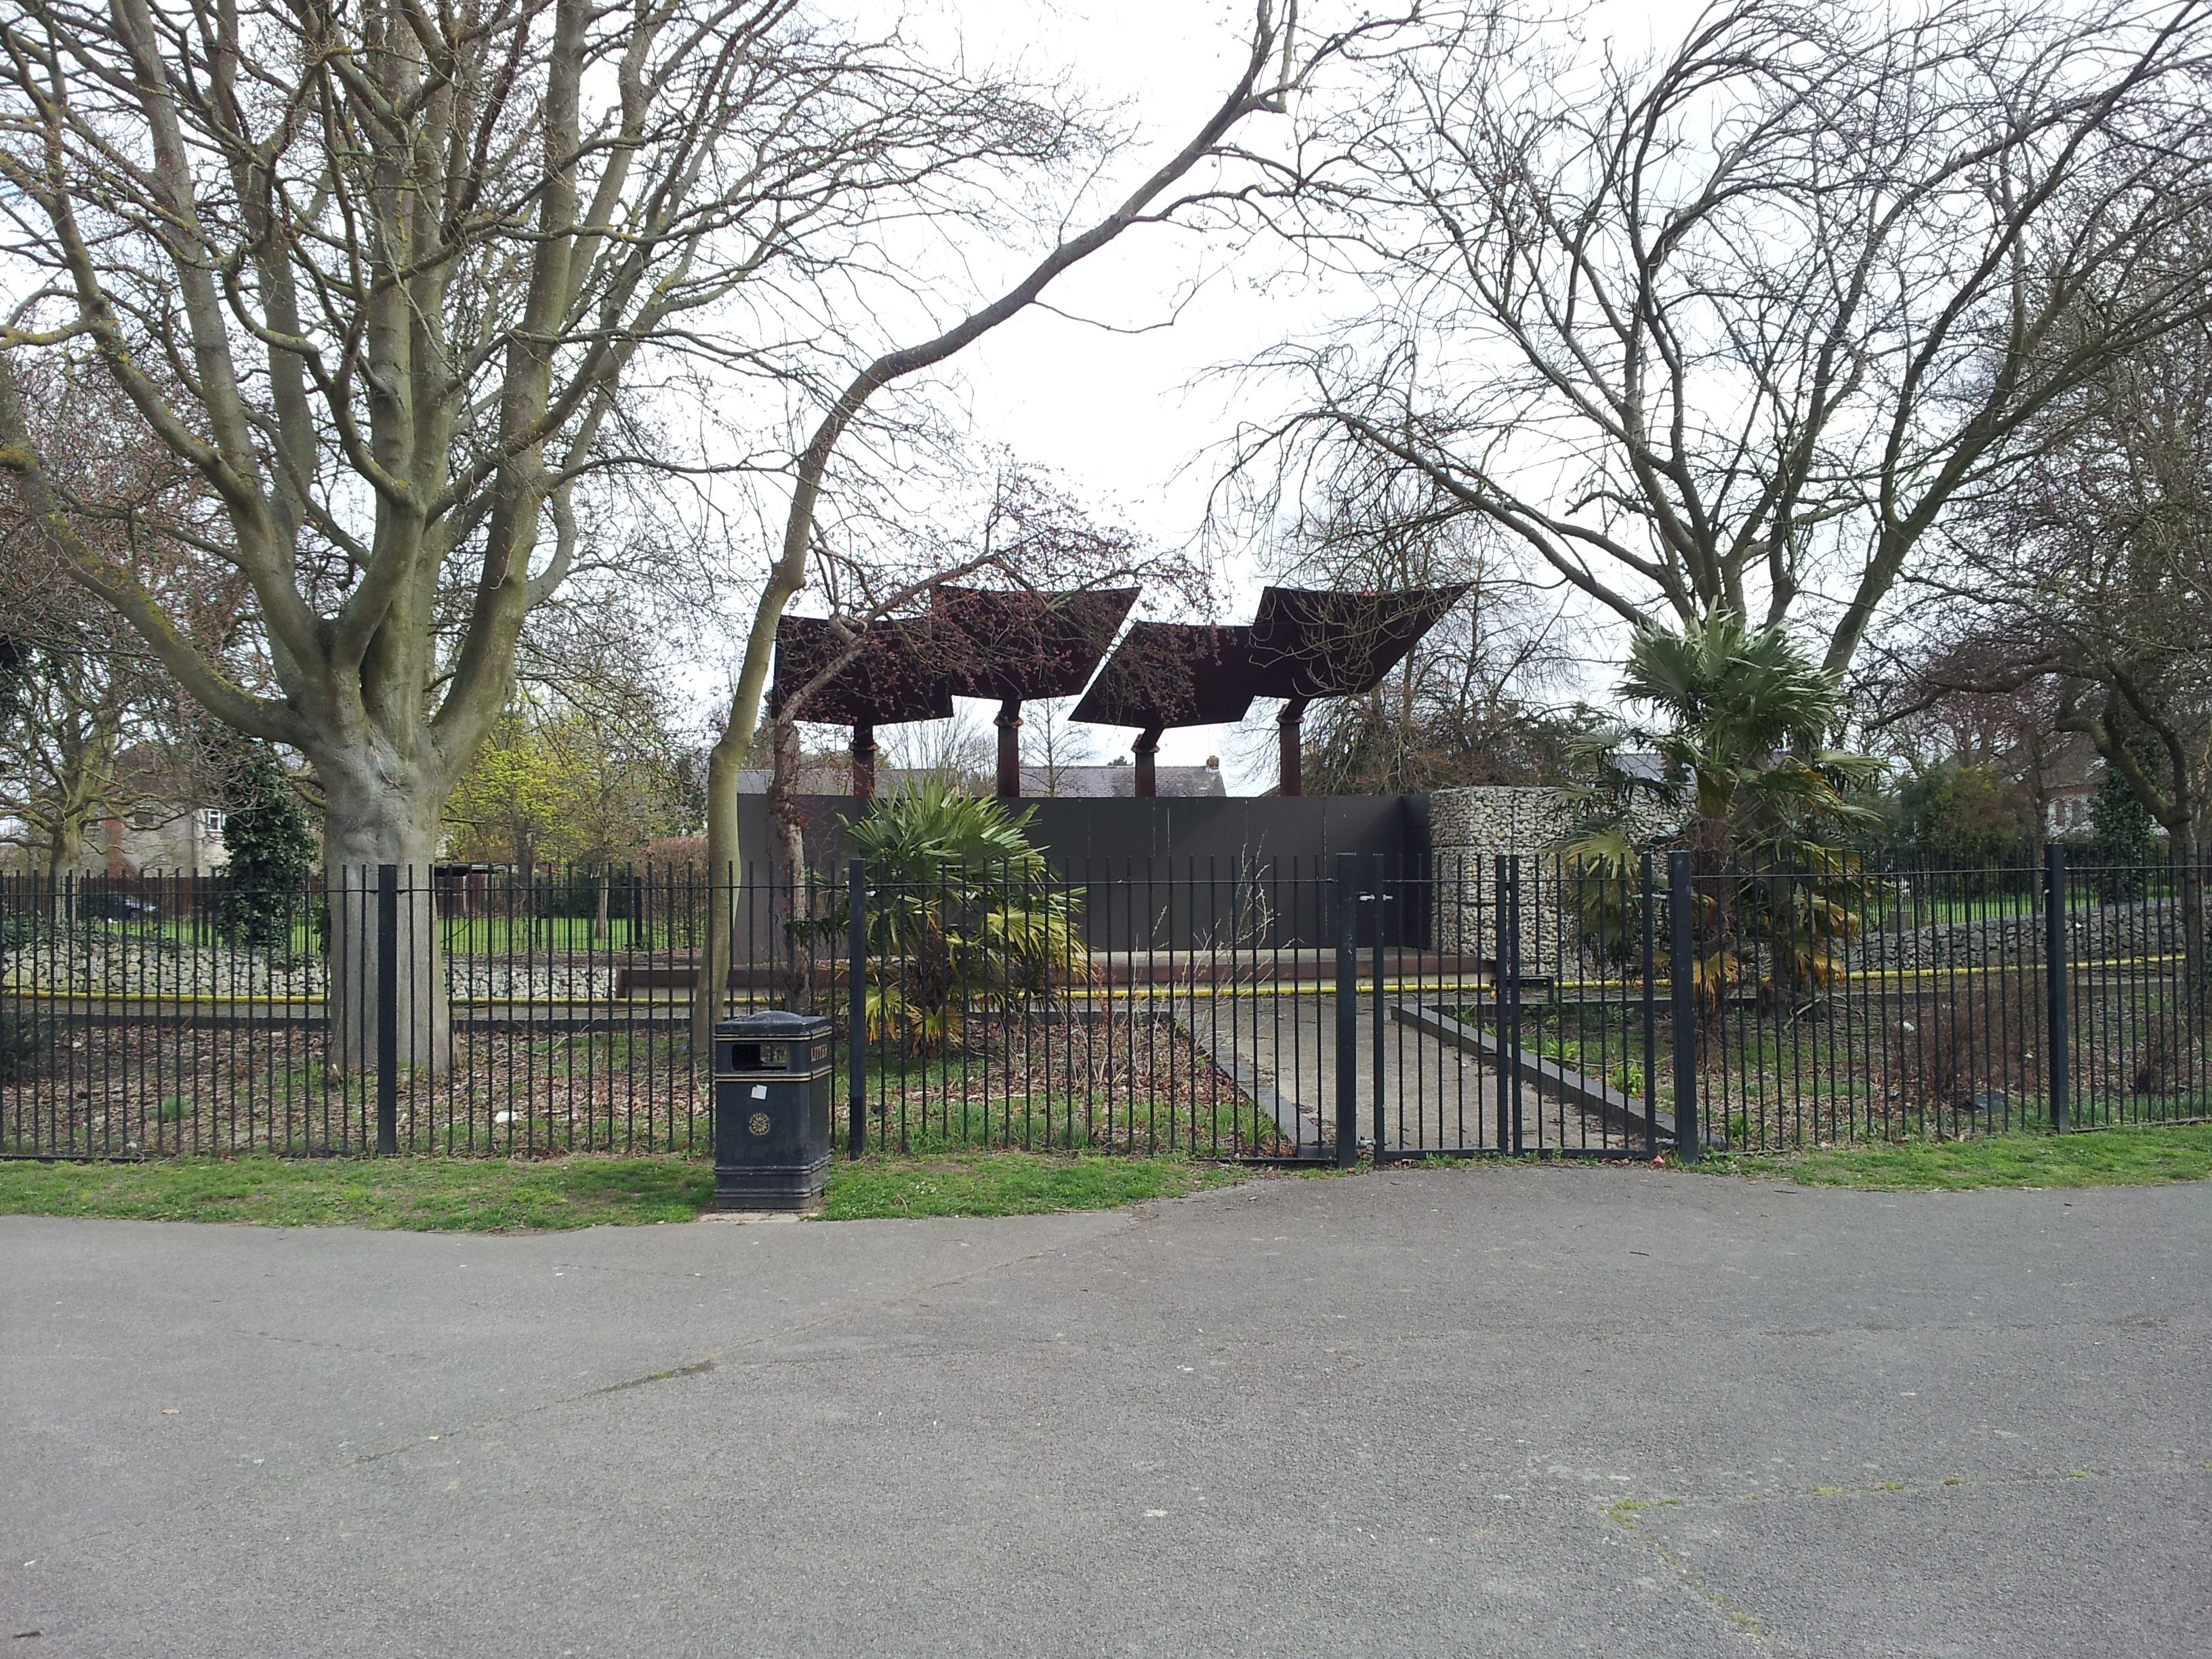 Open Air Theatre Barra Hall Park from park